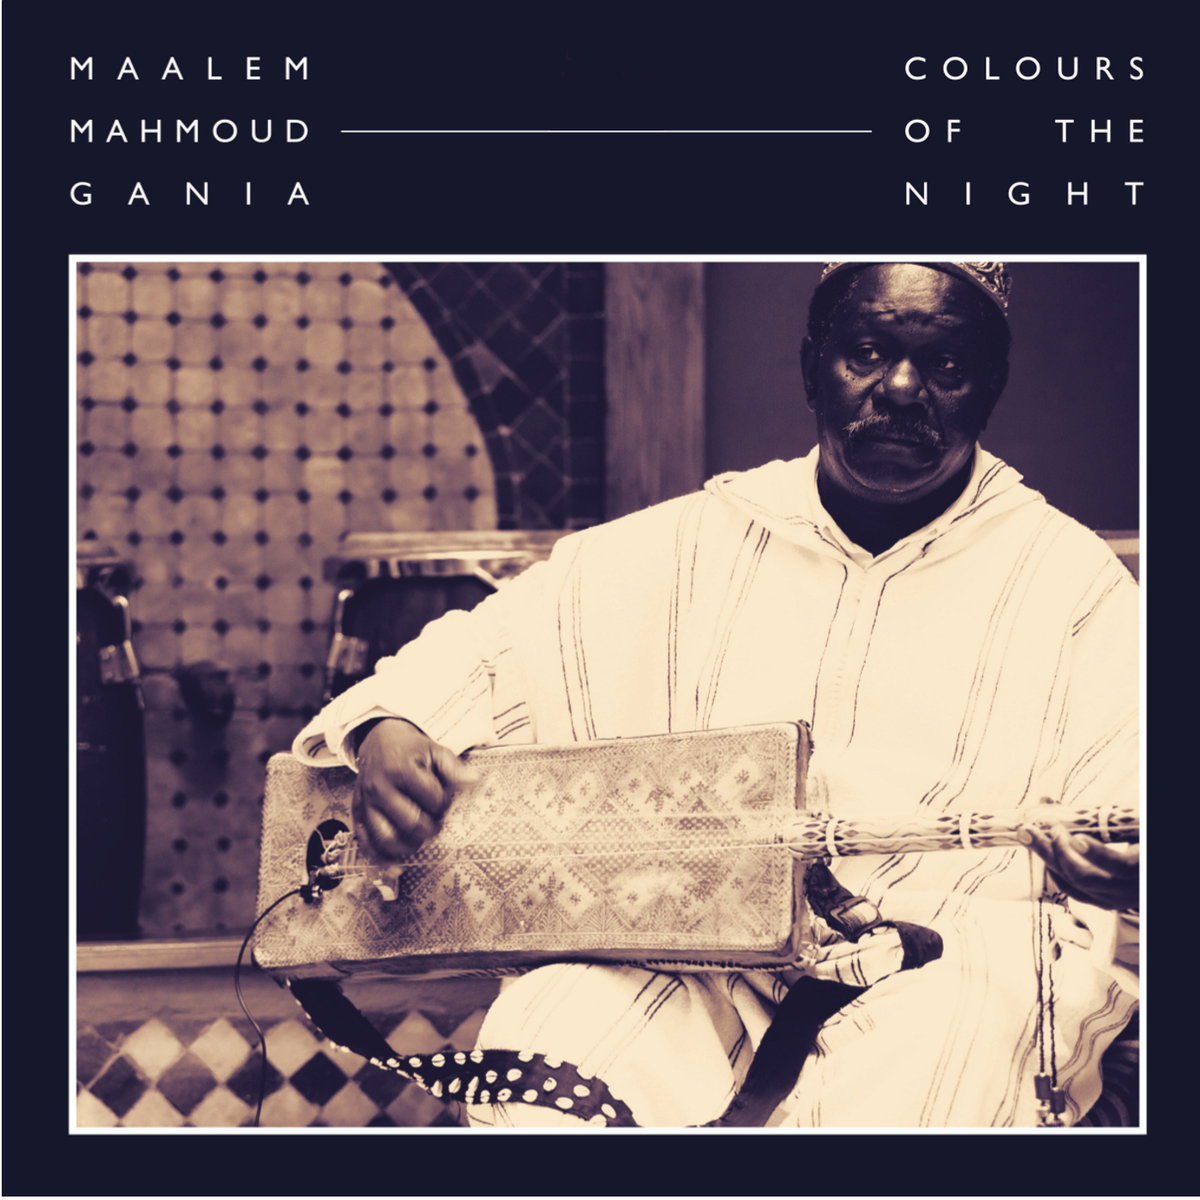 Colours of the Night by Maalem Mahmoud Gania image